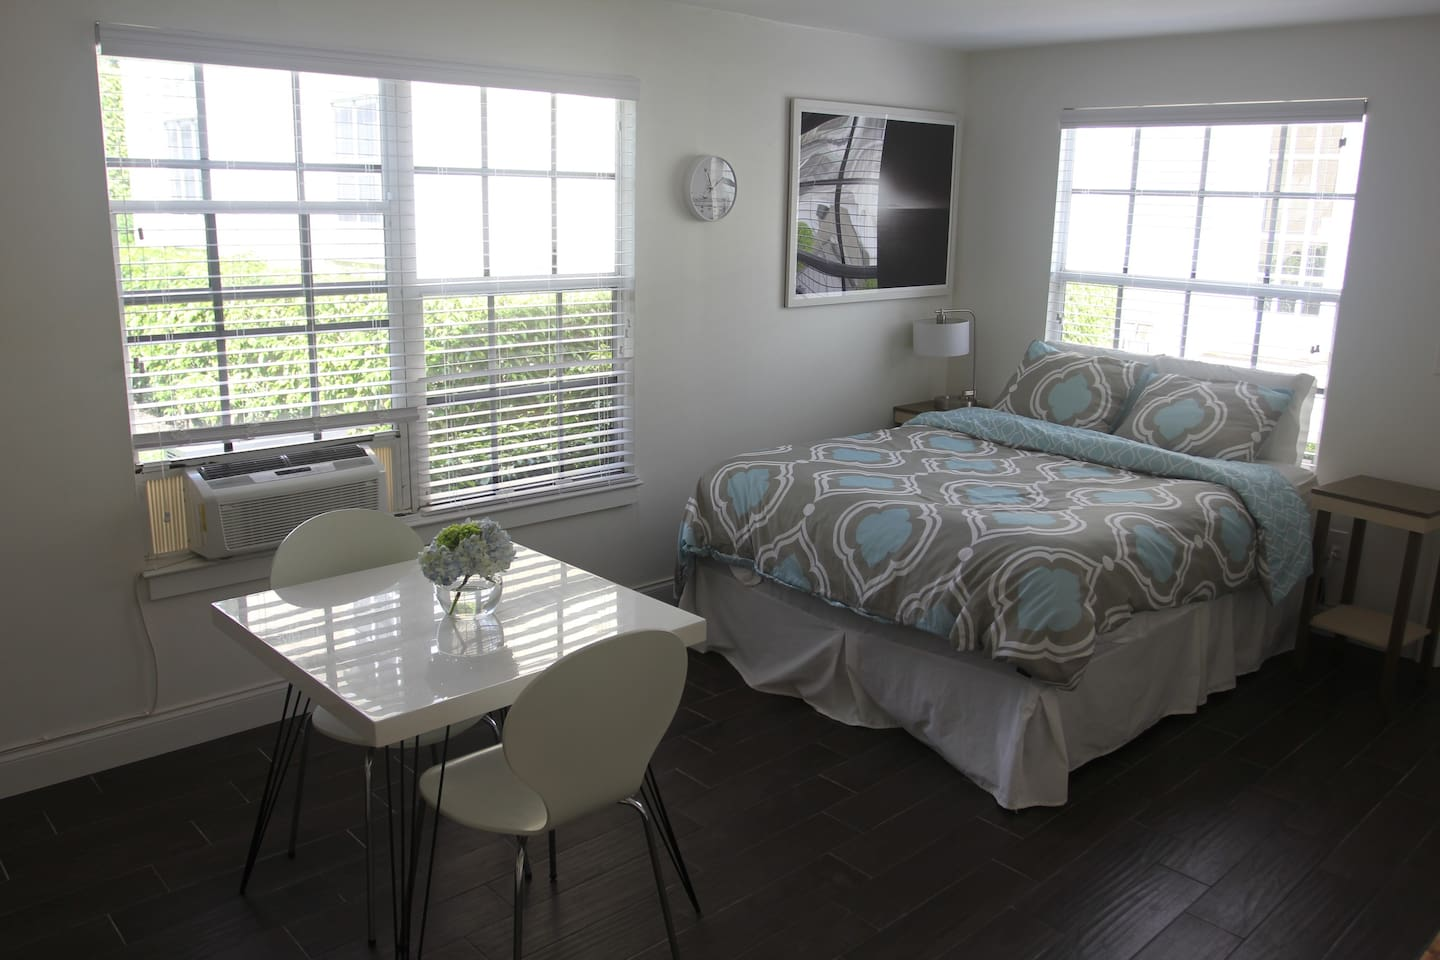 Spacious studio located minutes from downtown, the beach, WPB airport and the Tri-Rail.